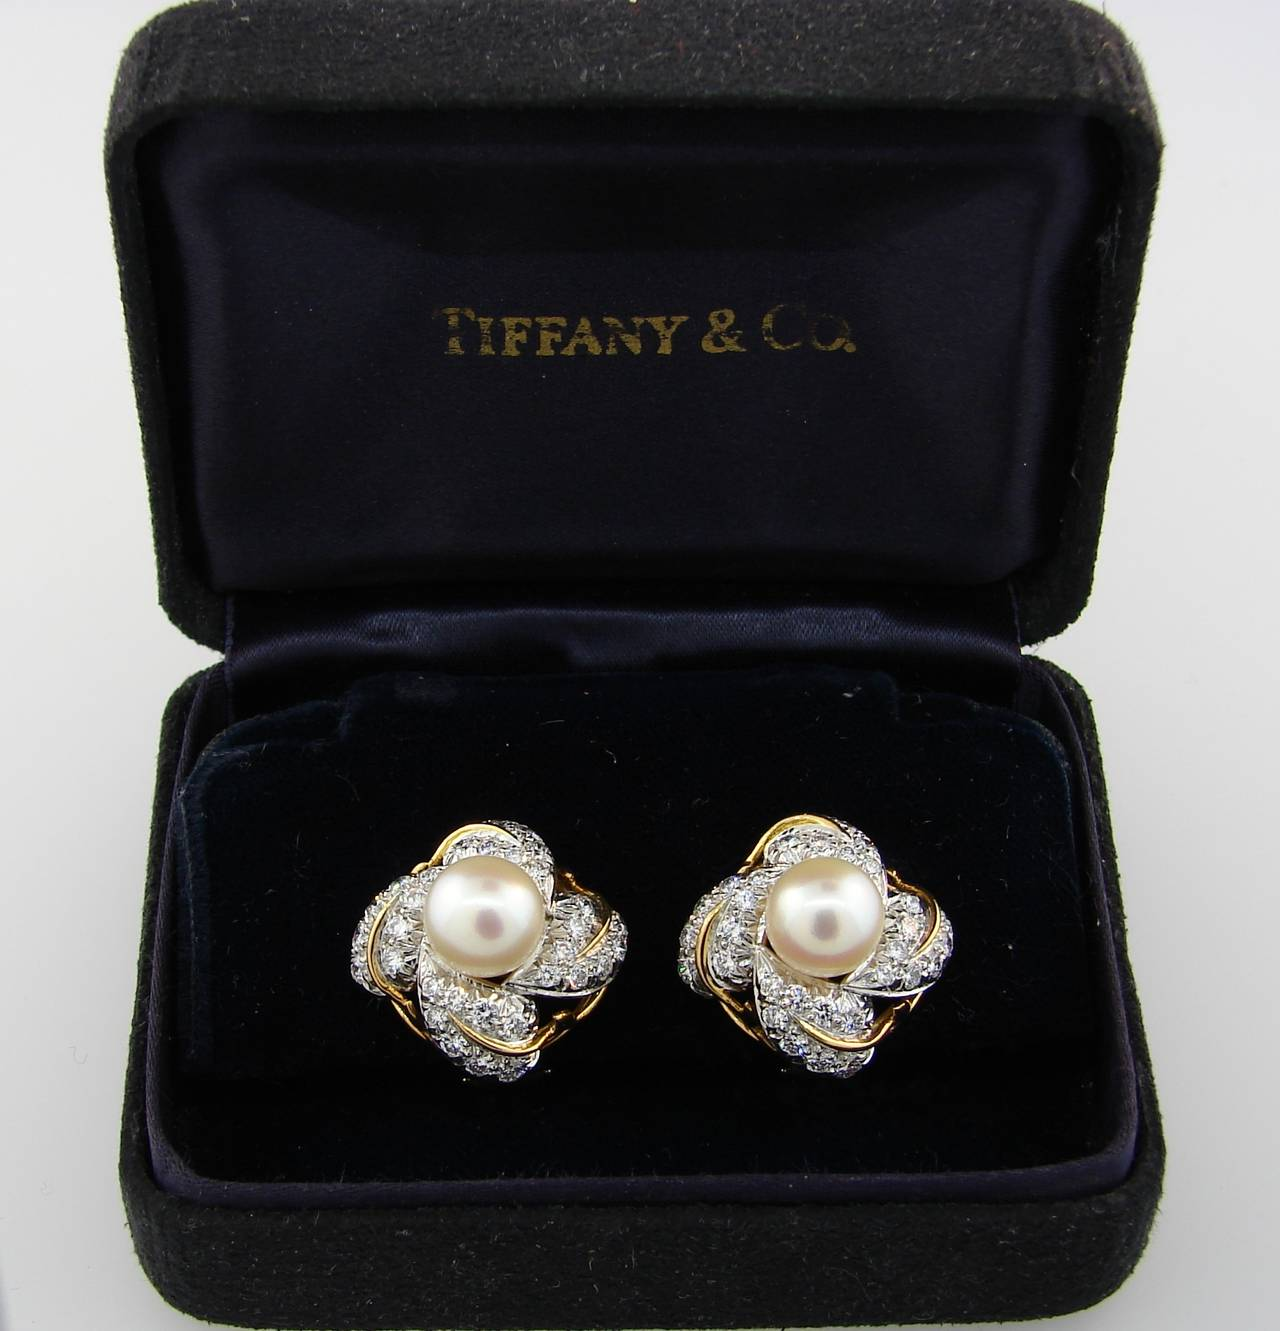 1970s Tiffany & Co. Schlumberger Pearl Diamond Gold Earrings 5